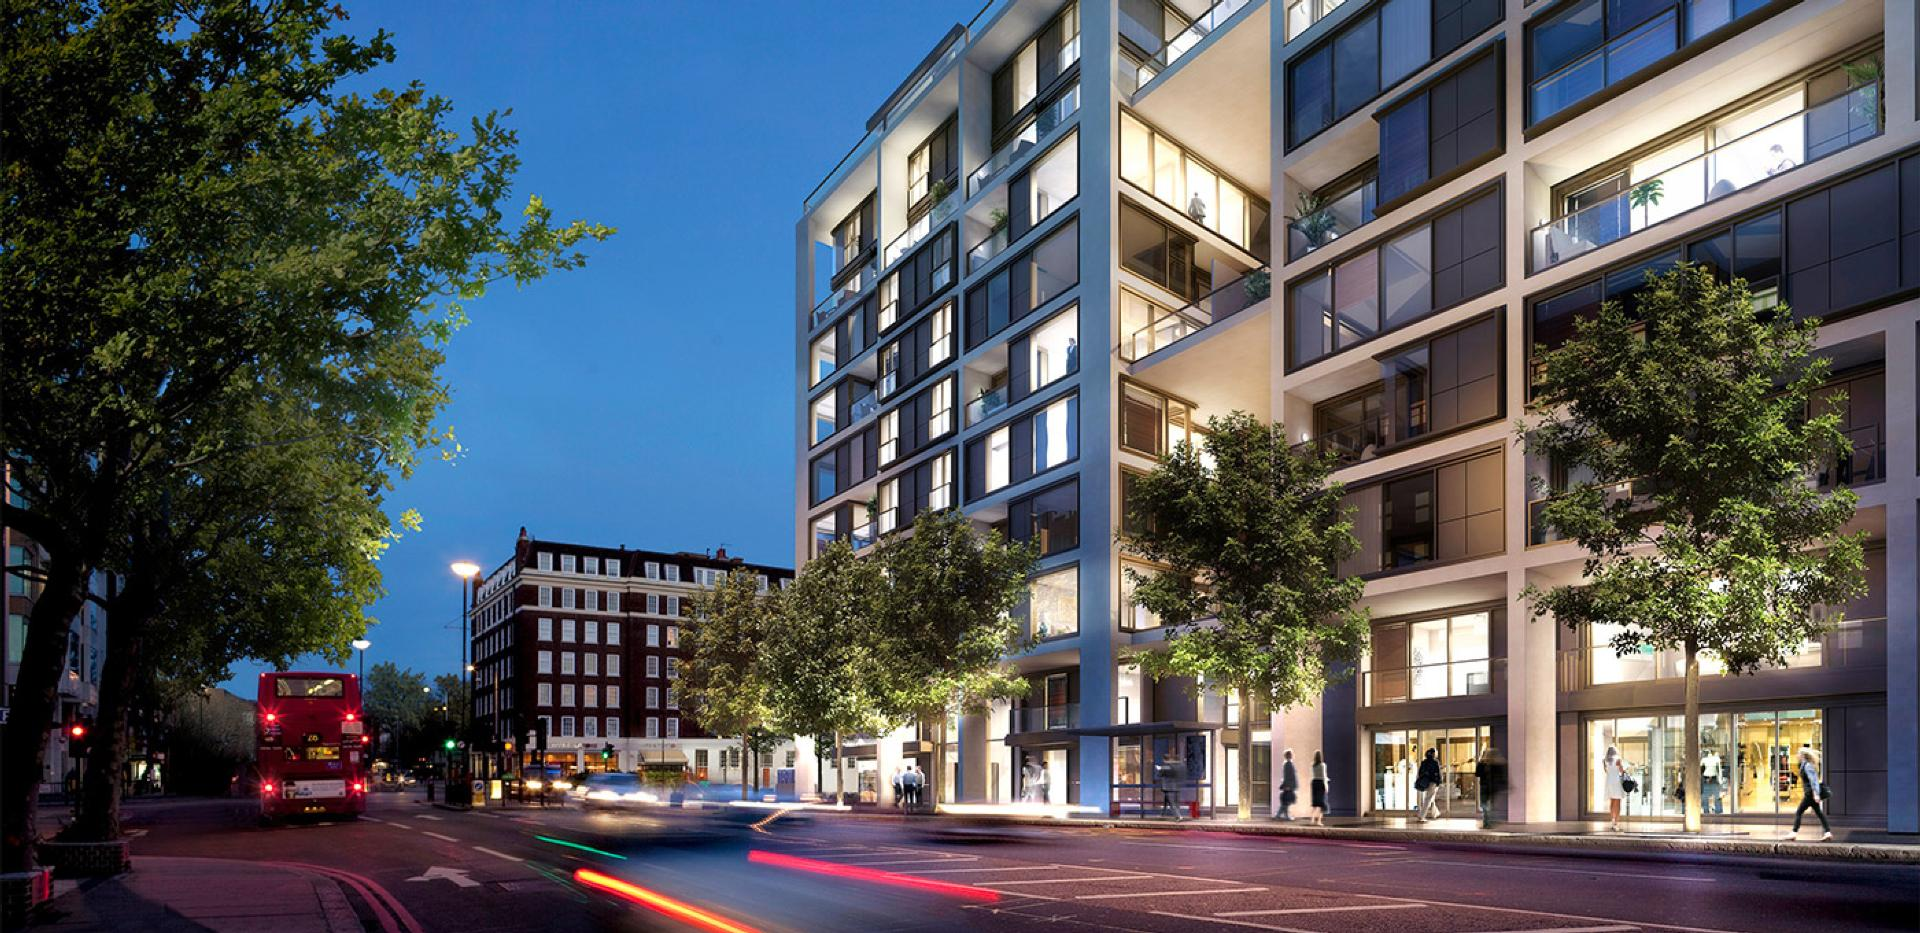 Apartments For Sale In 375 Kensington High Street